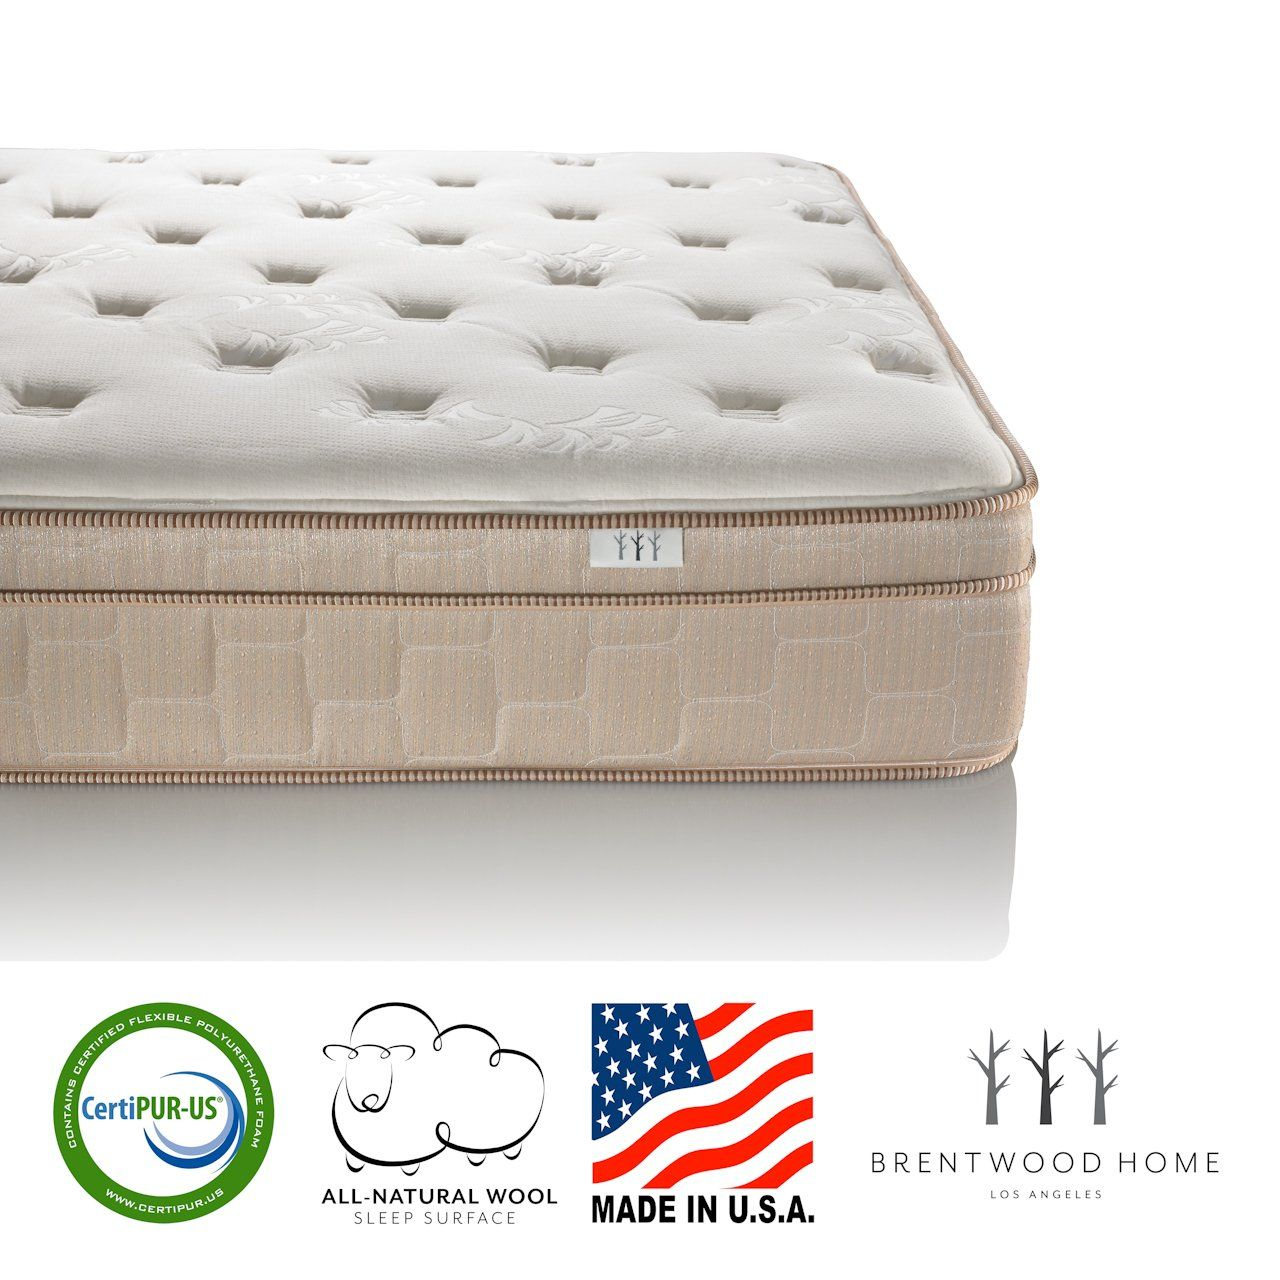 Brentwood Home Finale 11 Inch Eurotop Innerspring Mattress Certipur Us Made In Usa Natural Wool Layer Full Si Mattress Mattress Box Springs Guest Room Bed